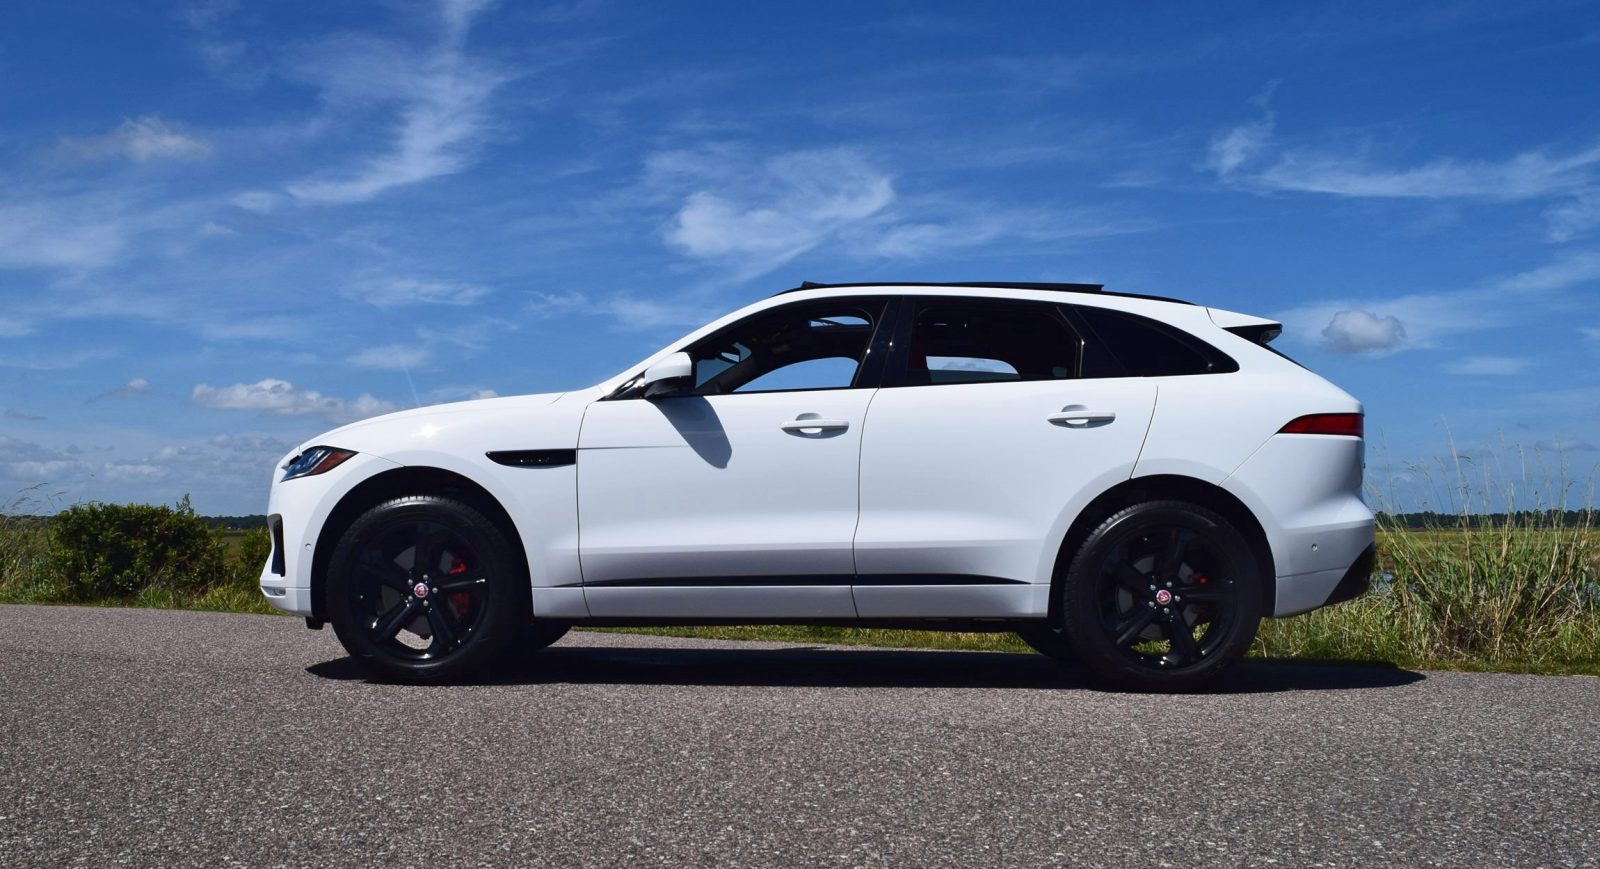 2017 Jaguar F Pace Accessories >> 2017 Jaguar F-Pace S - White Exterior 34